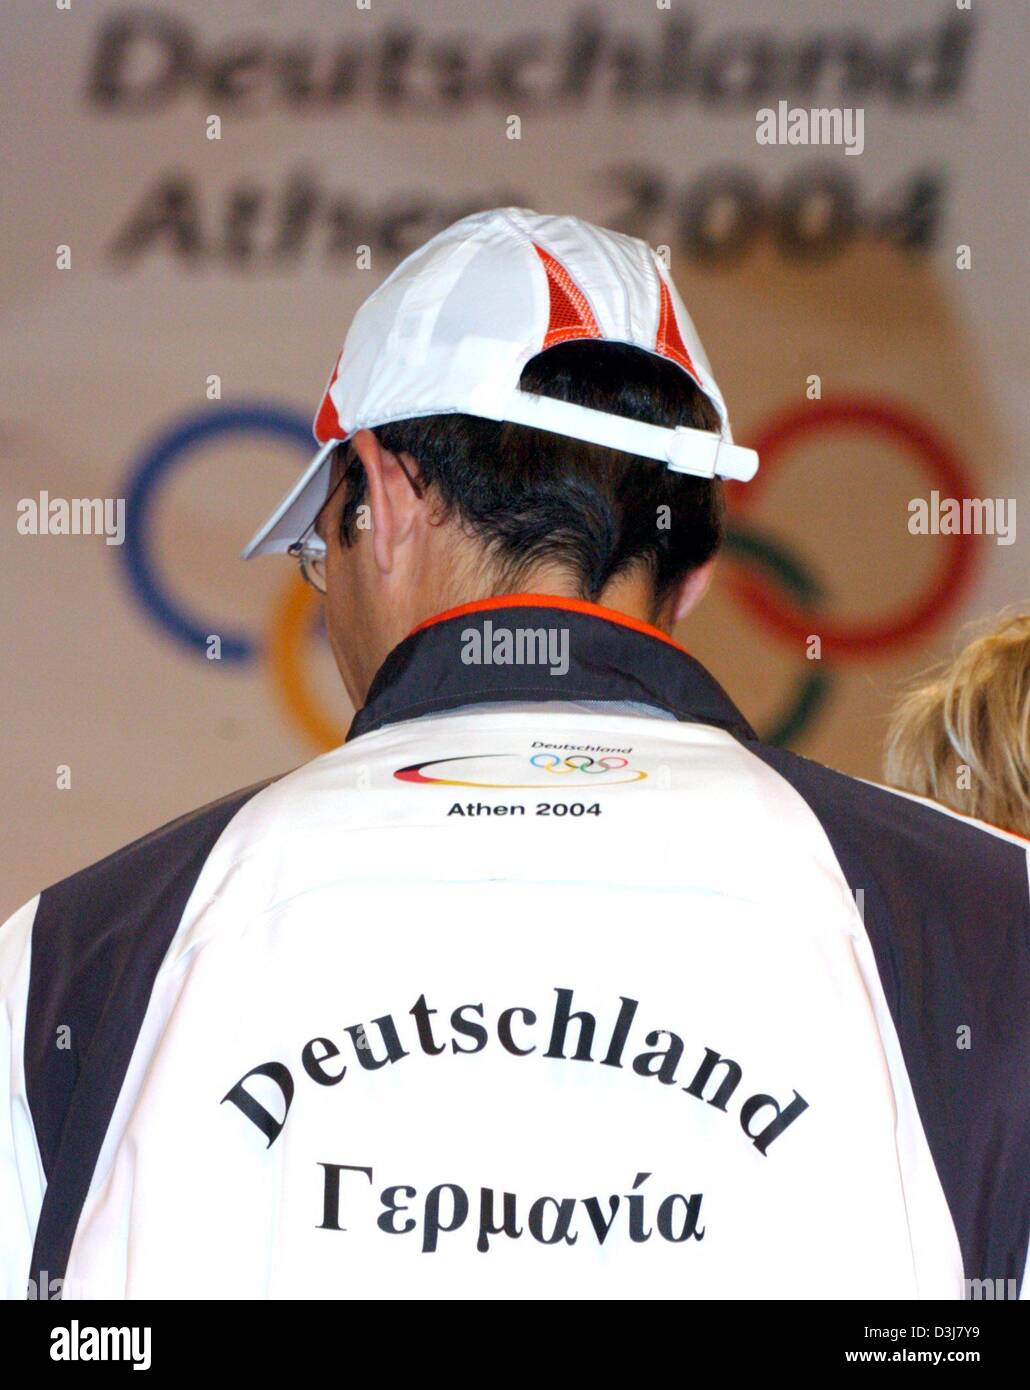 (dpa) - German athelet Ingo Schultz presents the writing on the back of his jacket which reads 'Germania' - Stock Image